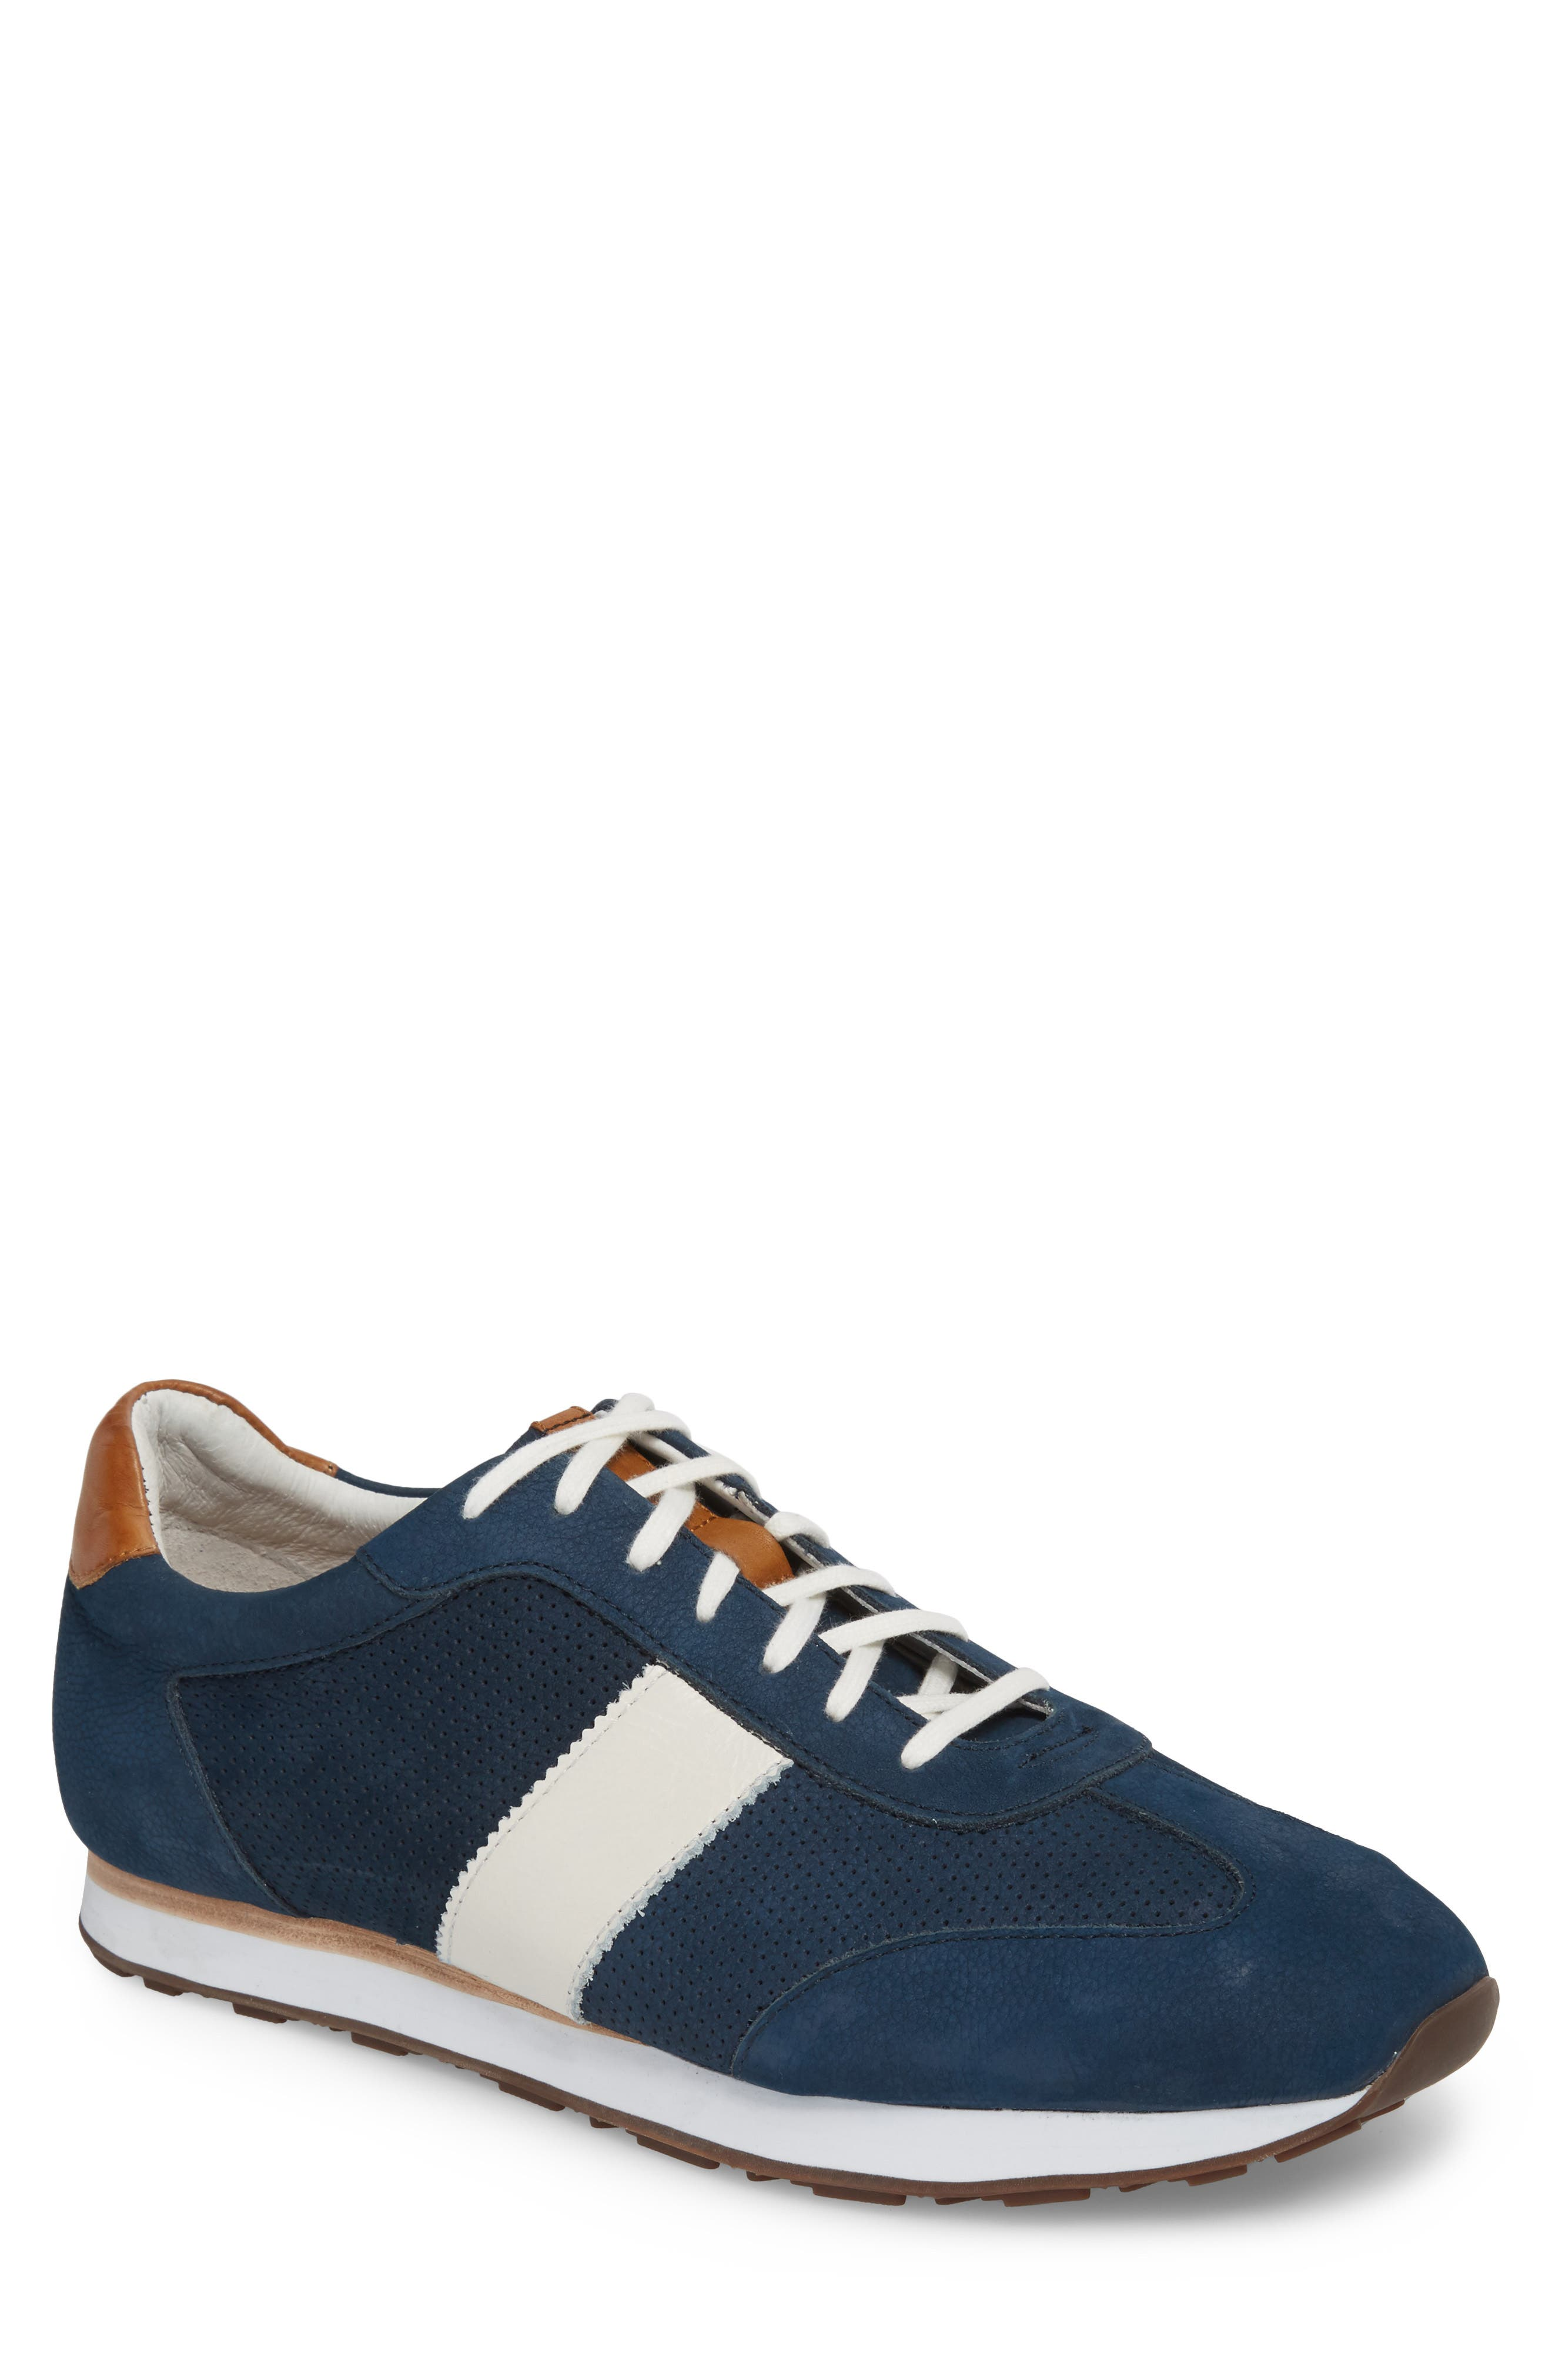 Malek Perforated Low Top Sneaker,                         Main,                         color, Navy Nubuck Leather